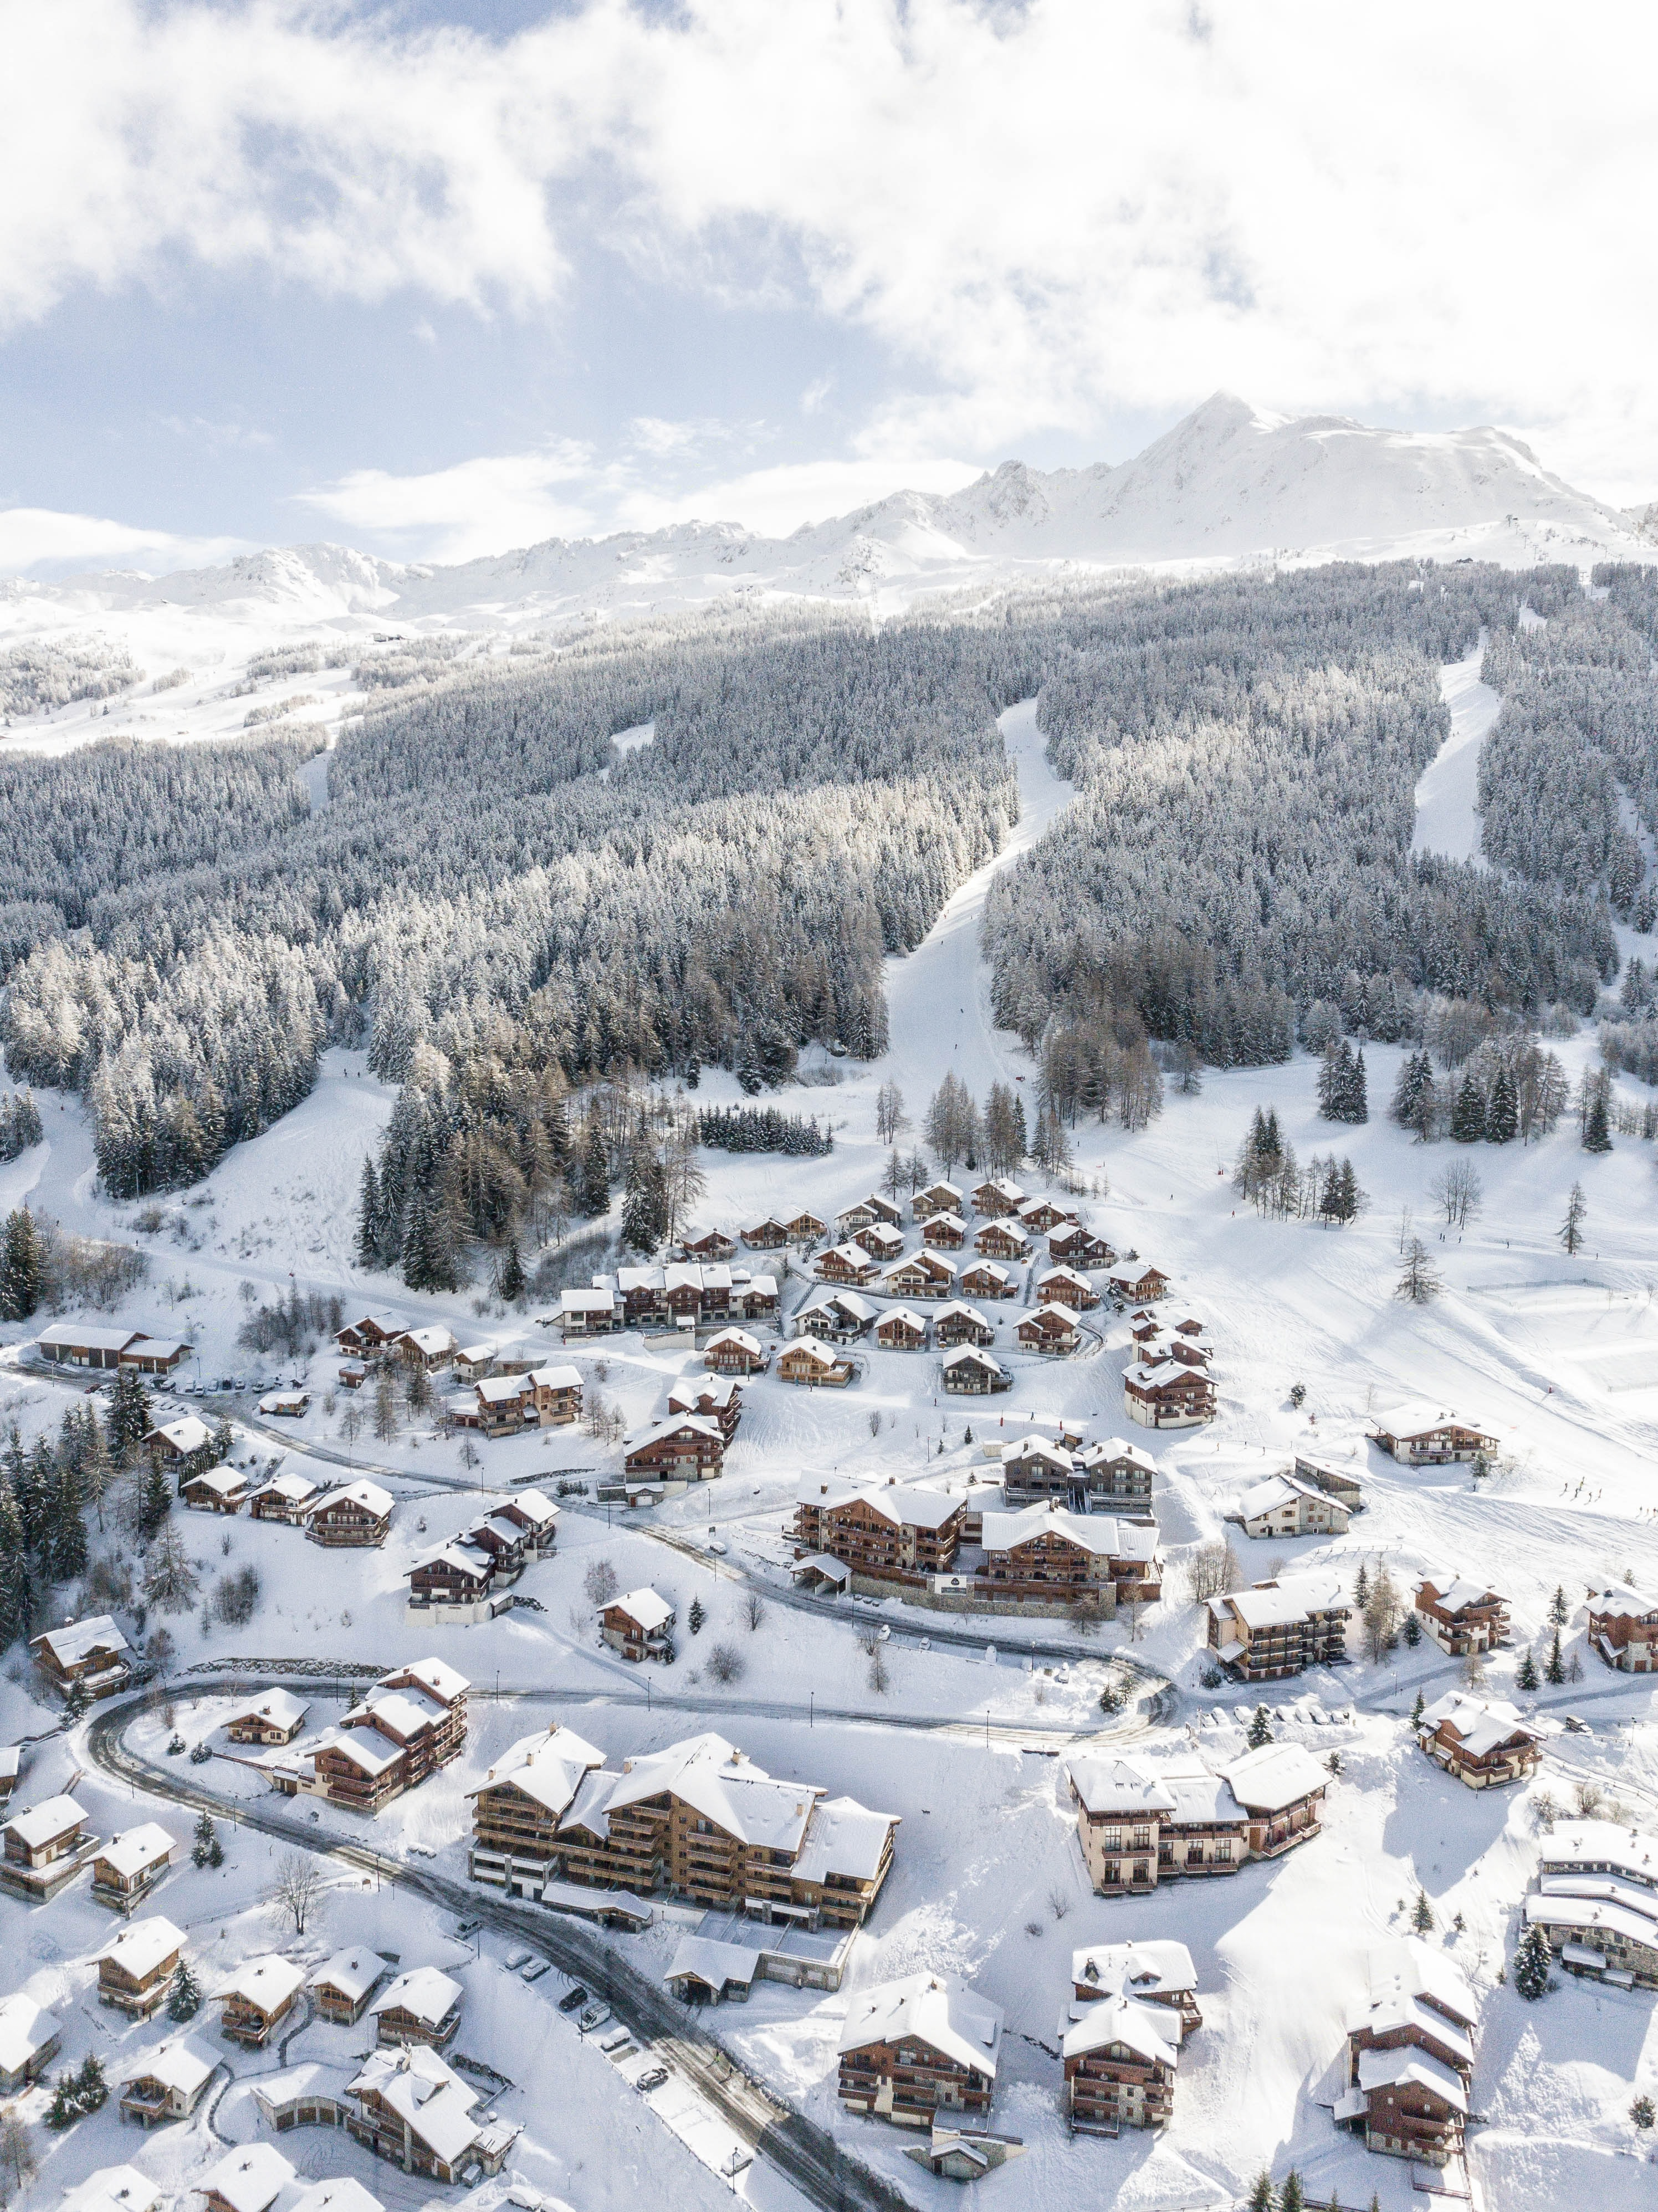 97942 download wallpaper Nature, Winter, City, Snow, Snow Covered, Snowbound, Mountains screensavers and pictures for free